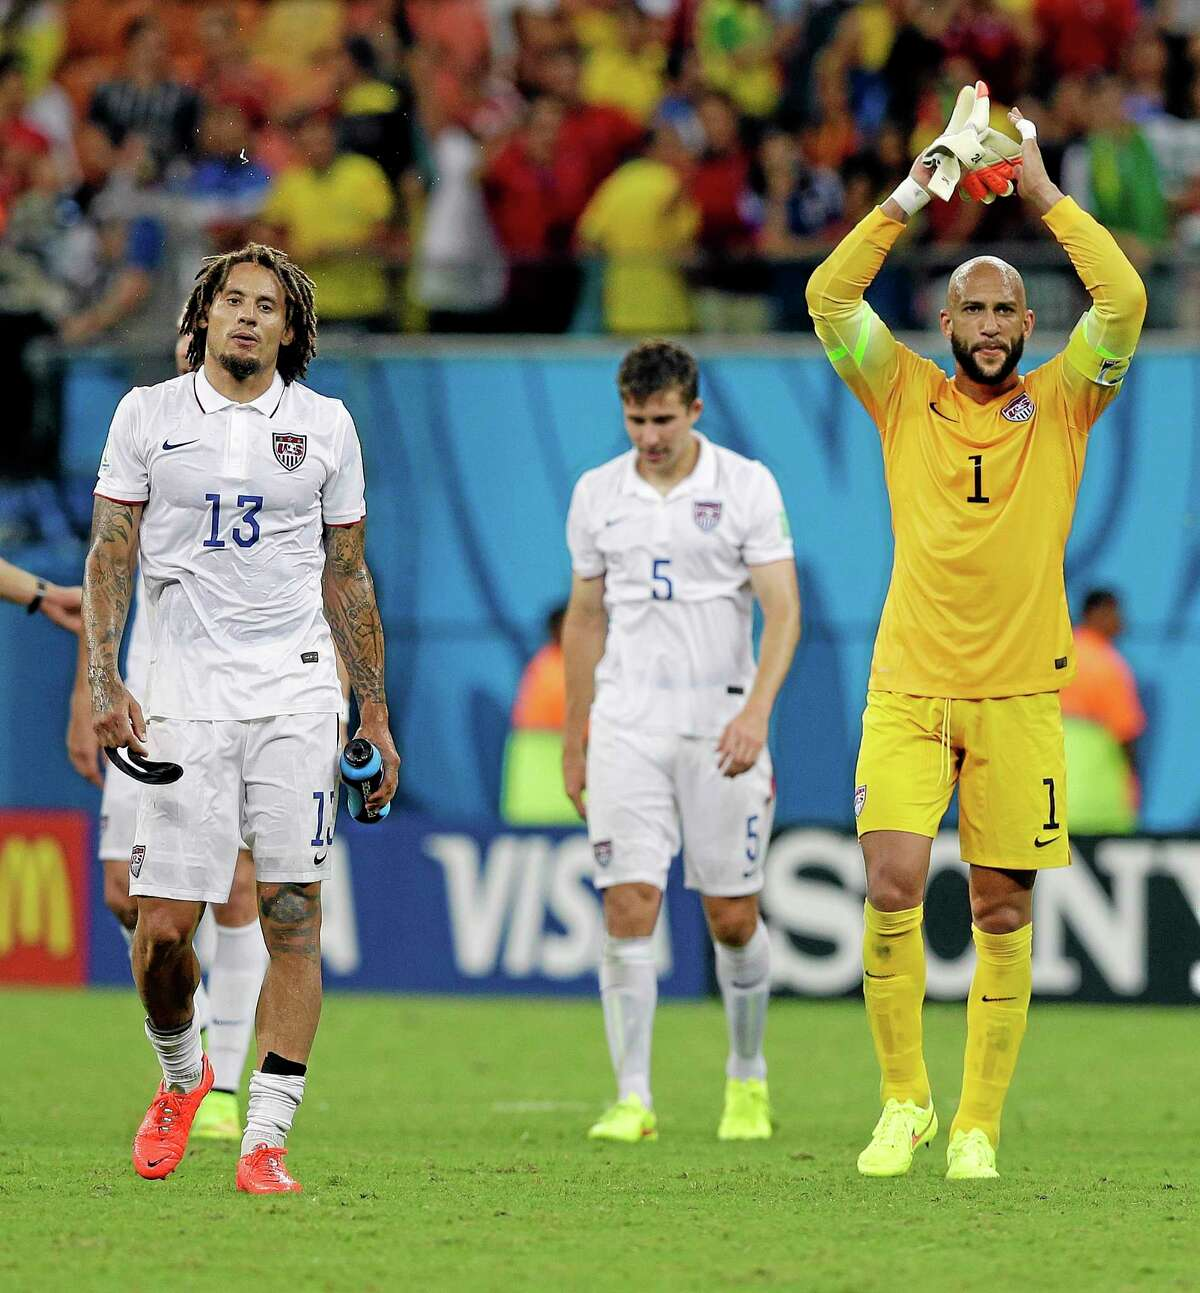 United States' goalkeeper Tim Howard and United States' Jermaine Jones walk off the pitch following their 2-2 draw with Portugal on Sunday.